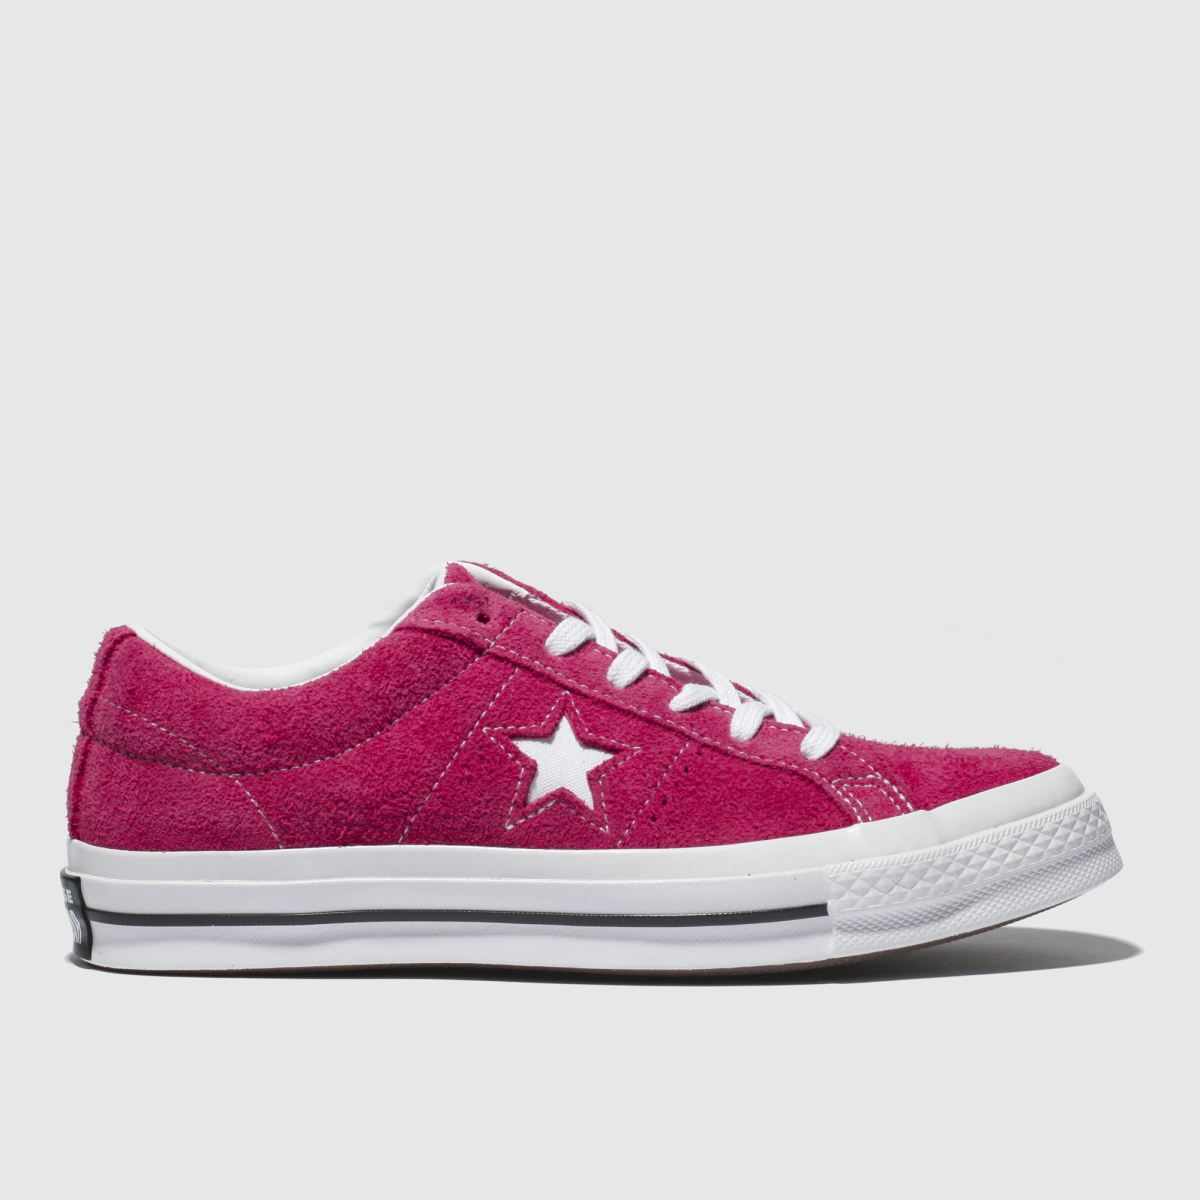 Converse Pink One Star Ox Suede Trainers